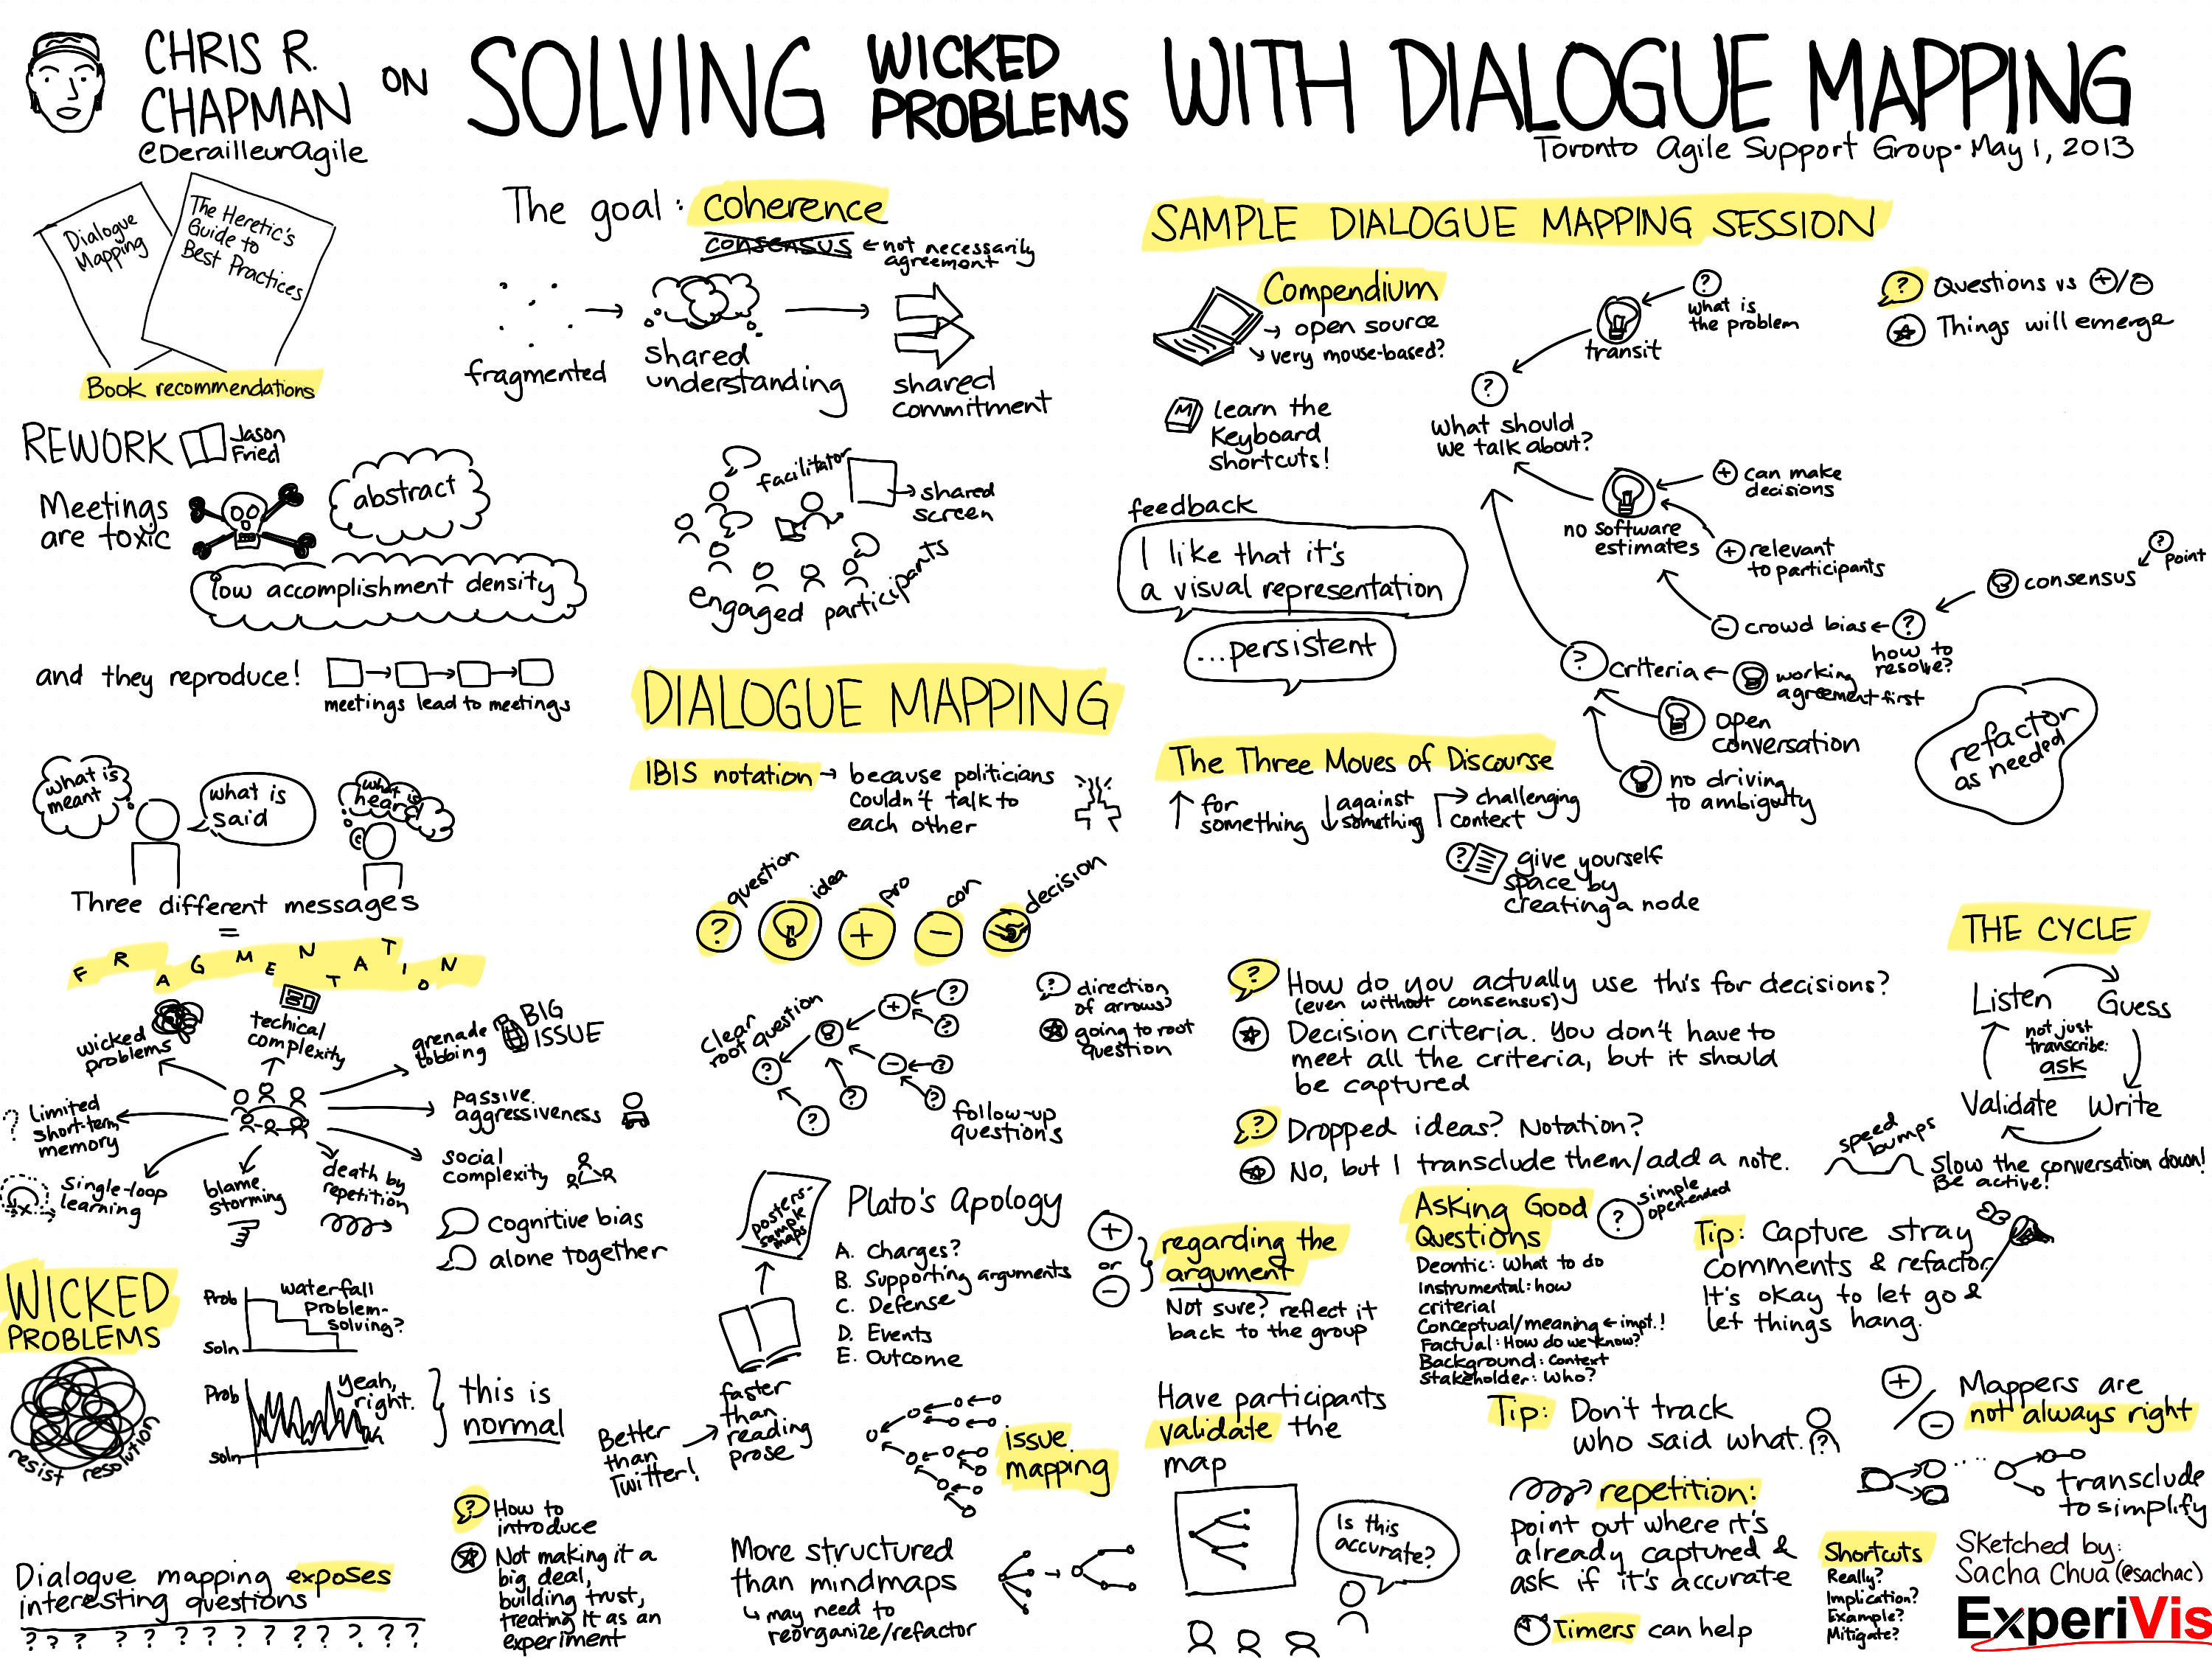 30 day photo challenge ideas - Sketchnote Solving Wicked Problems with Dialogue Mapping